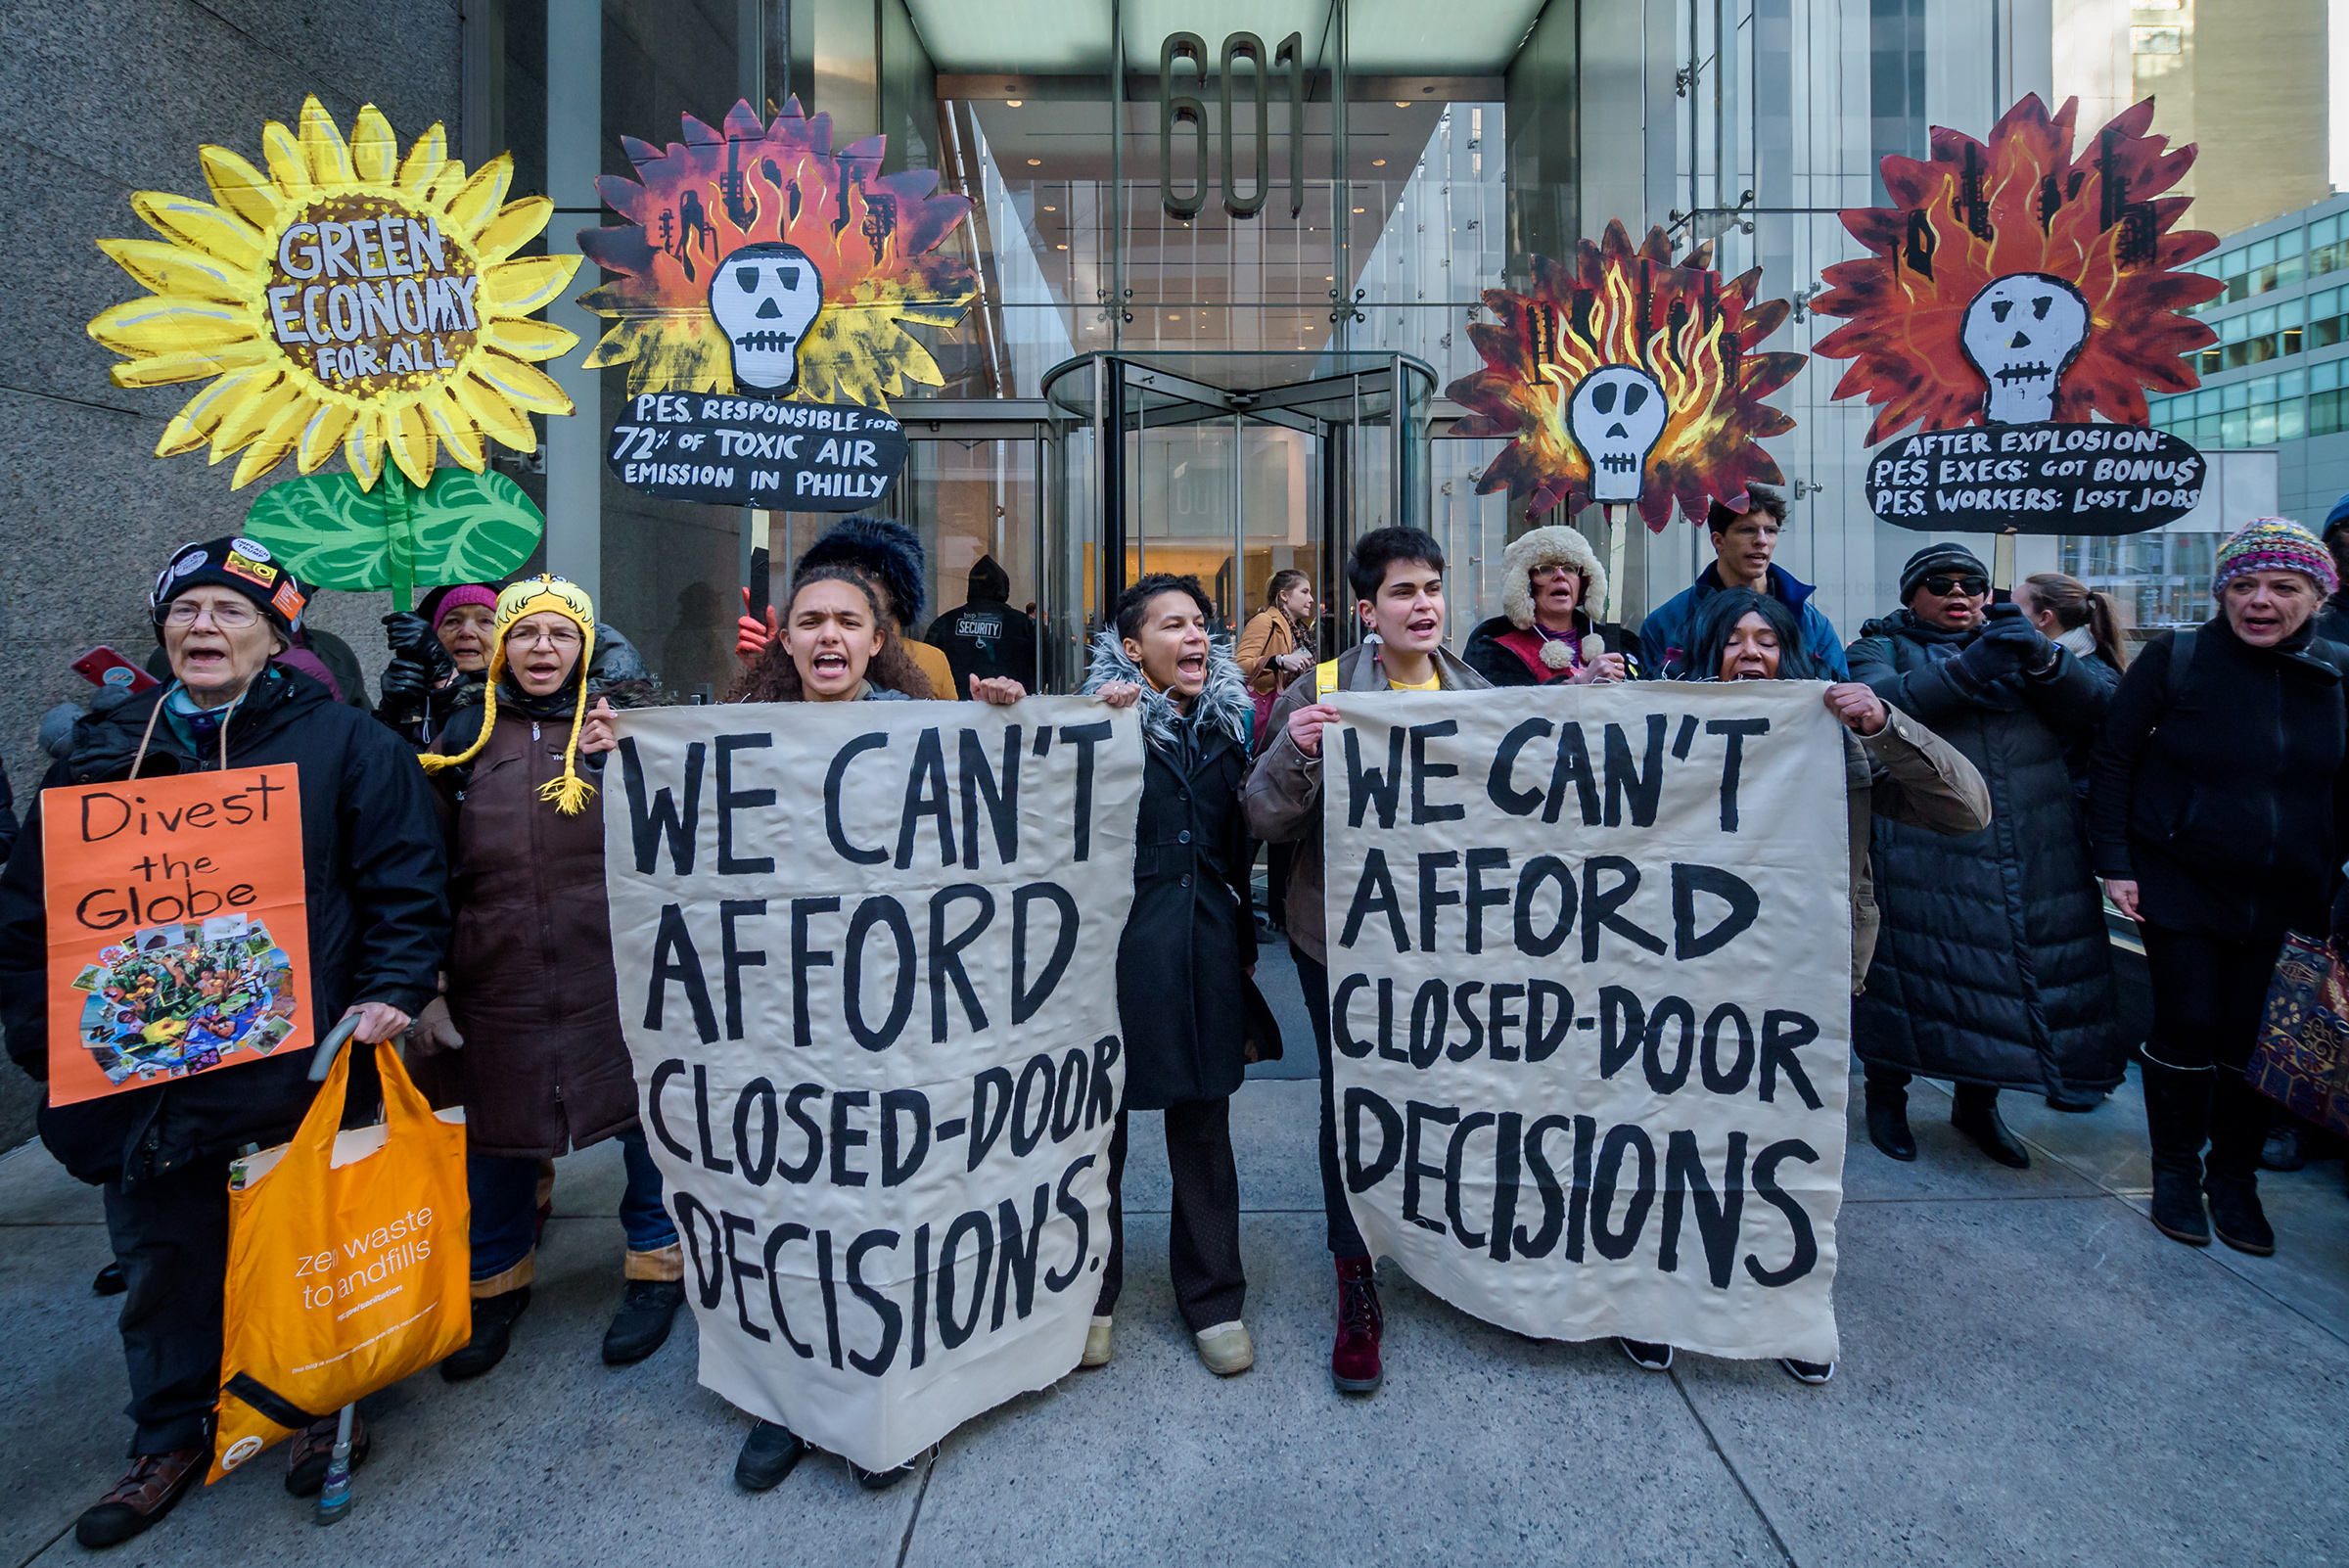 A Jan. 17 protest in opposition to the reopening of the Philadelphia Energy Solutions Refining Complex